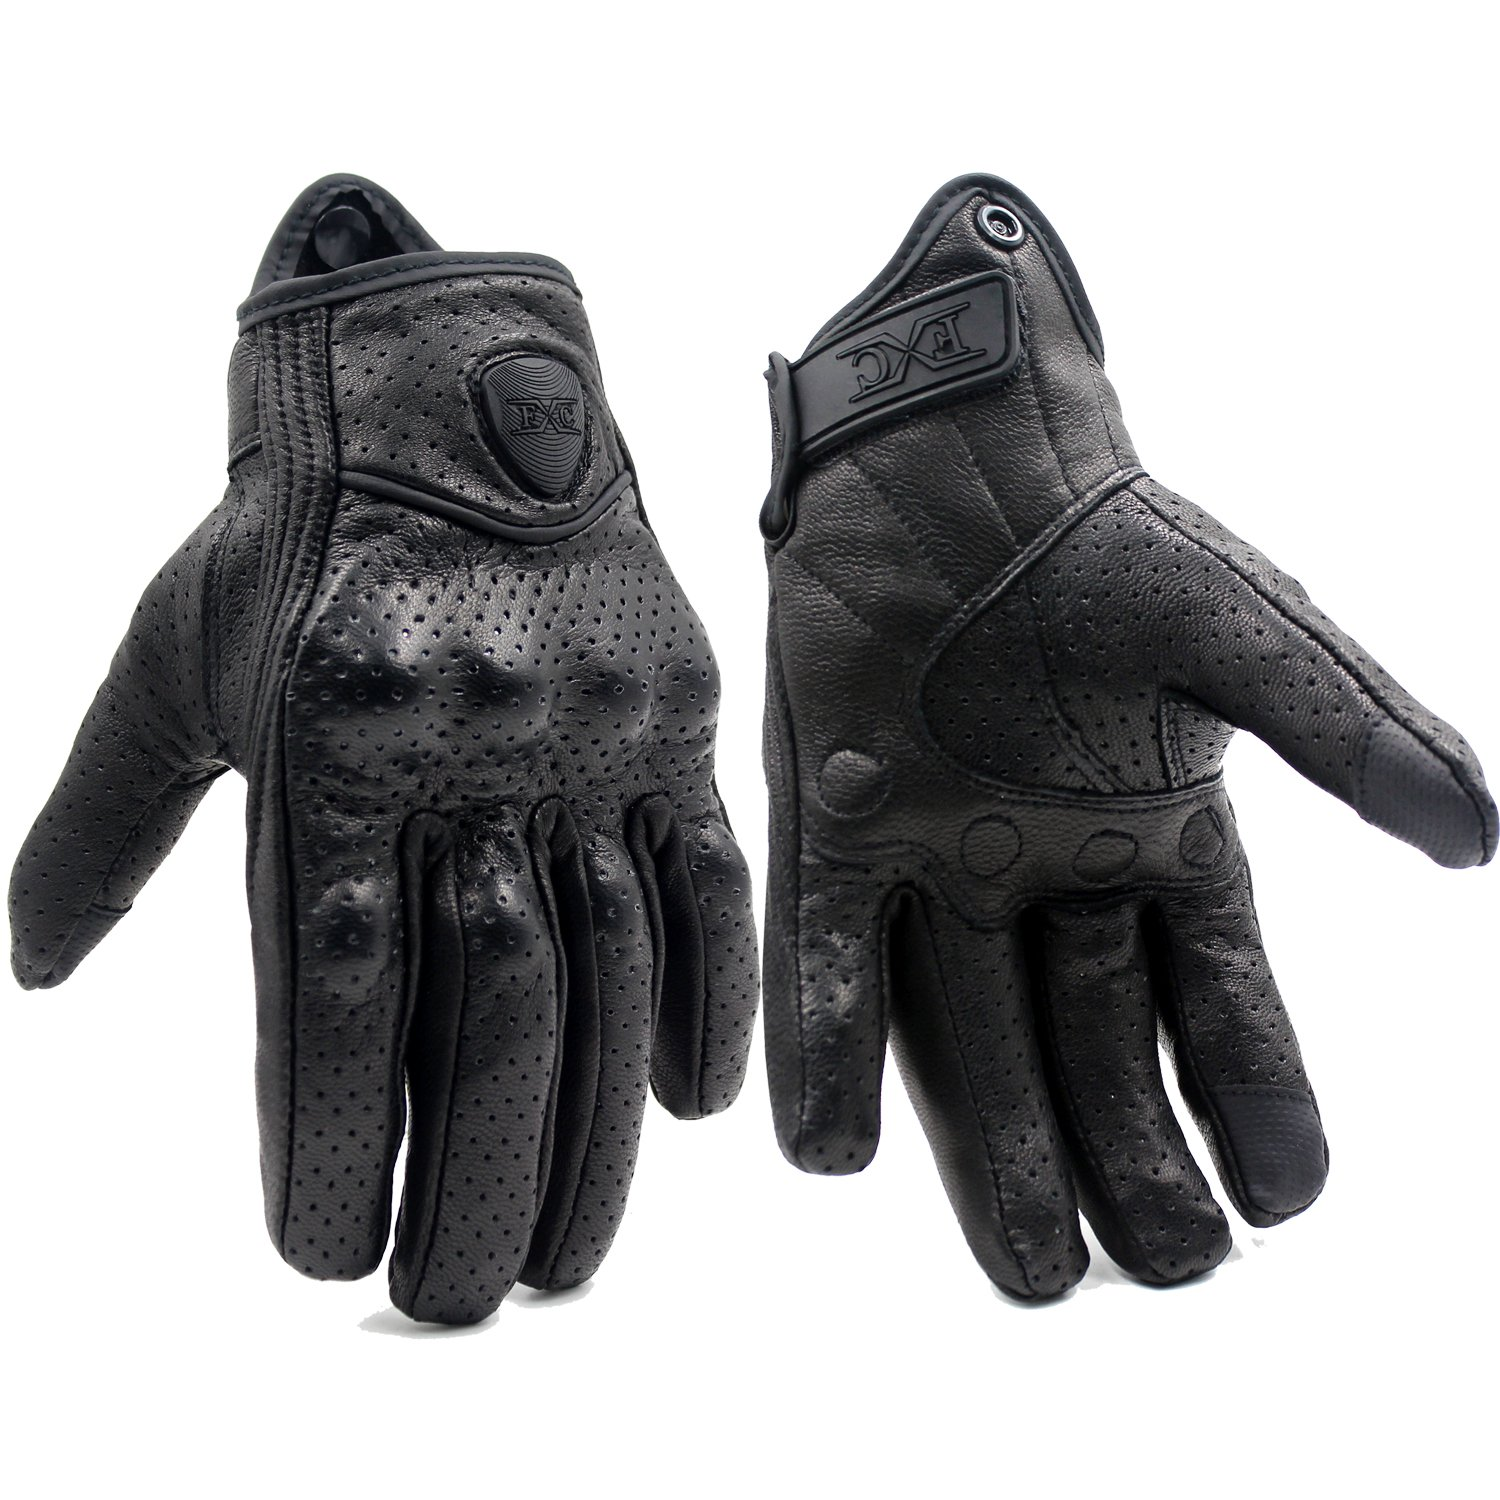 Motorcycle leather gloves amazon - Amazon Com Fxc Full Finger Motorcycle Leather Gloves Men S Premium Protective Motorbike Gloves Xl Mesh Automotive